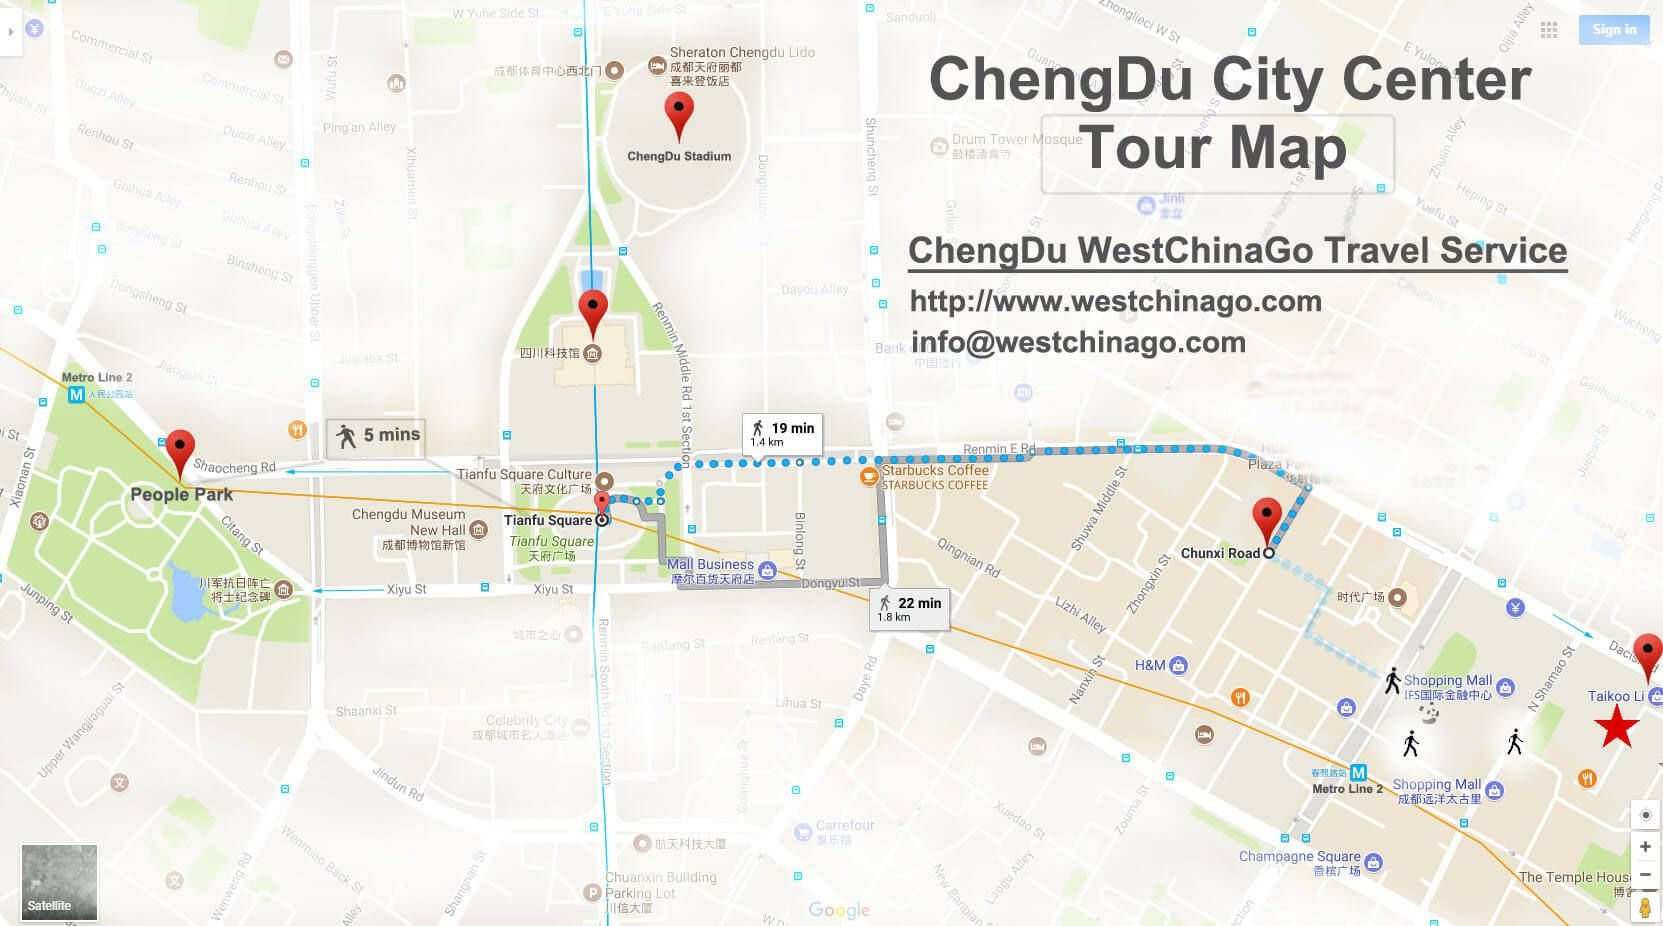 chengdu city center tour map httpwwwwestchinagocom chengdu